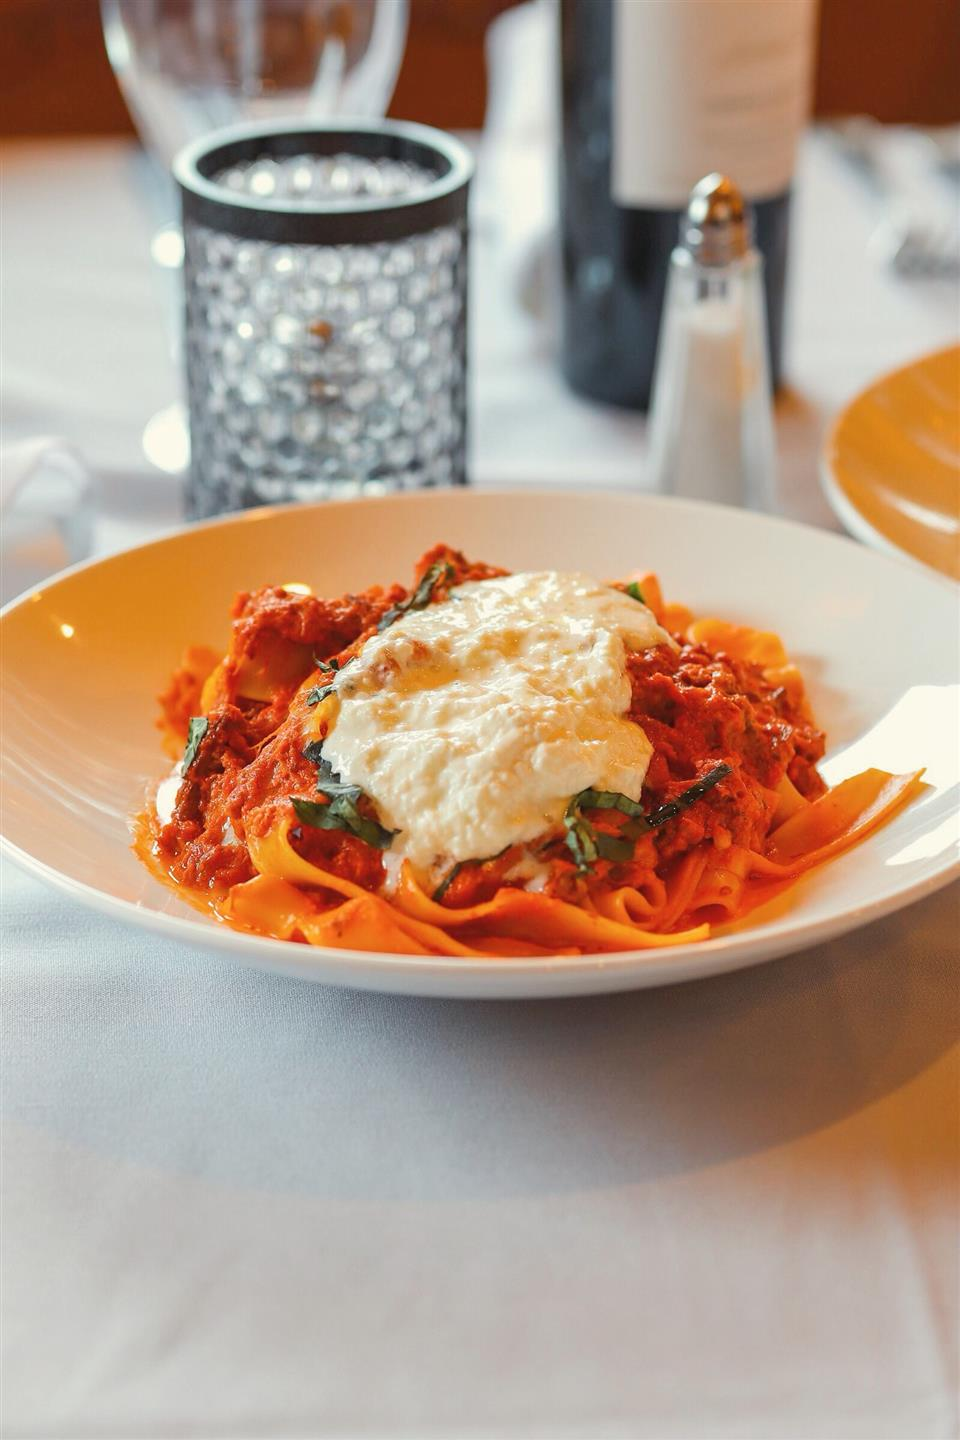 pulled short rib, veal and pork sauce and enhanced with the creamy and utterly delicious stracciatella di bufala